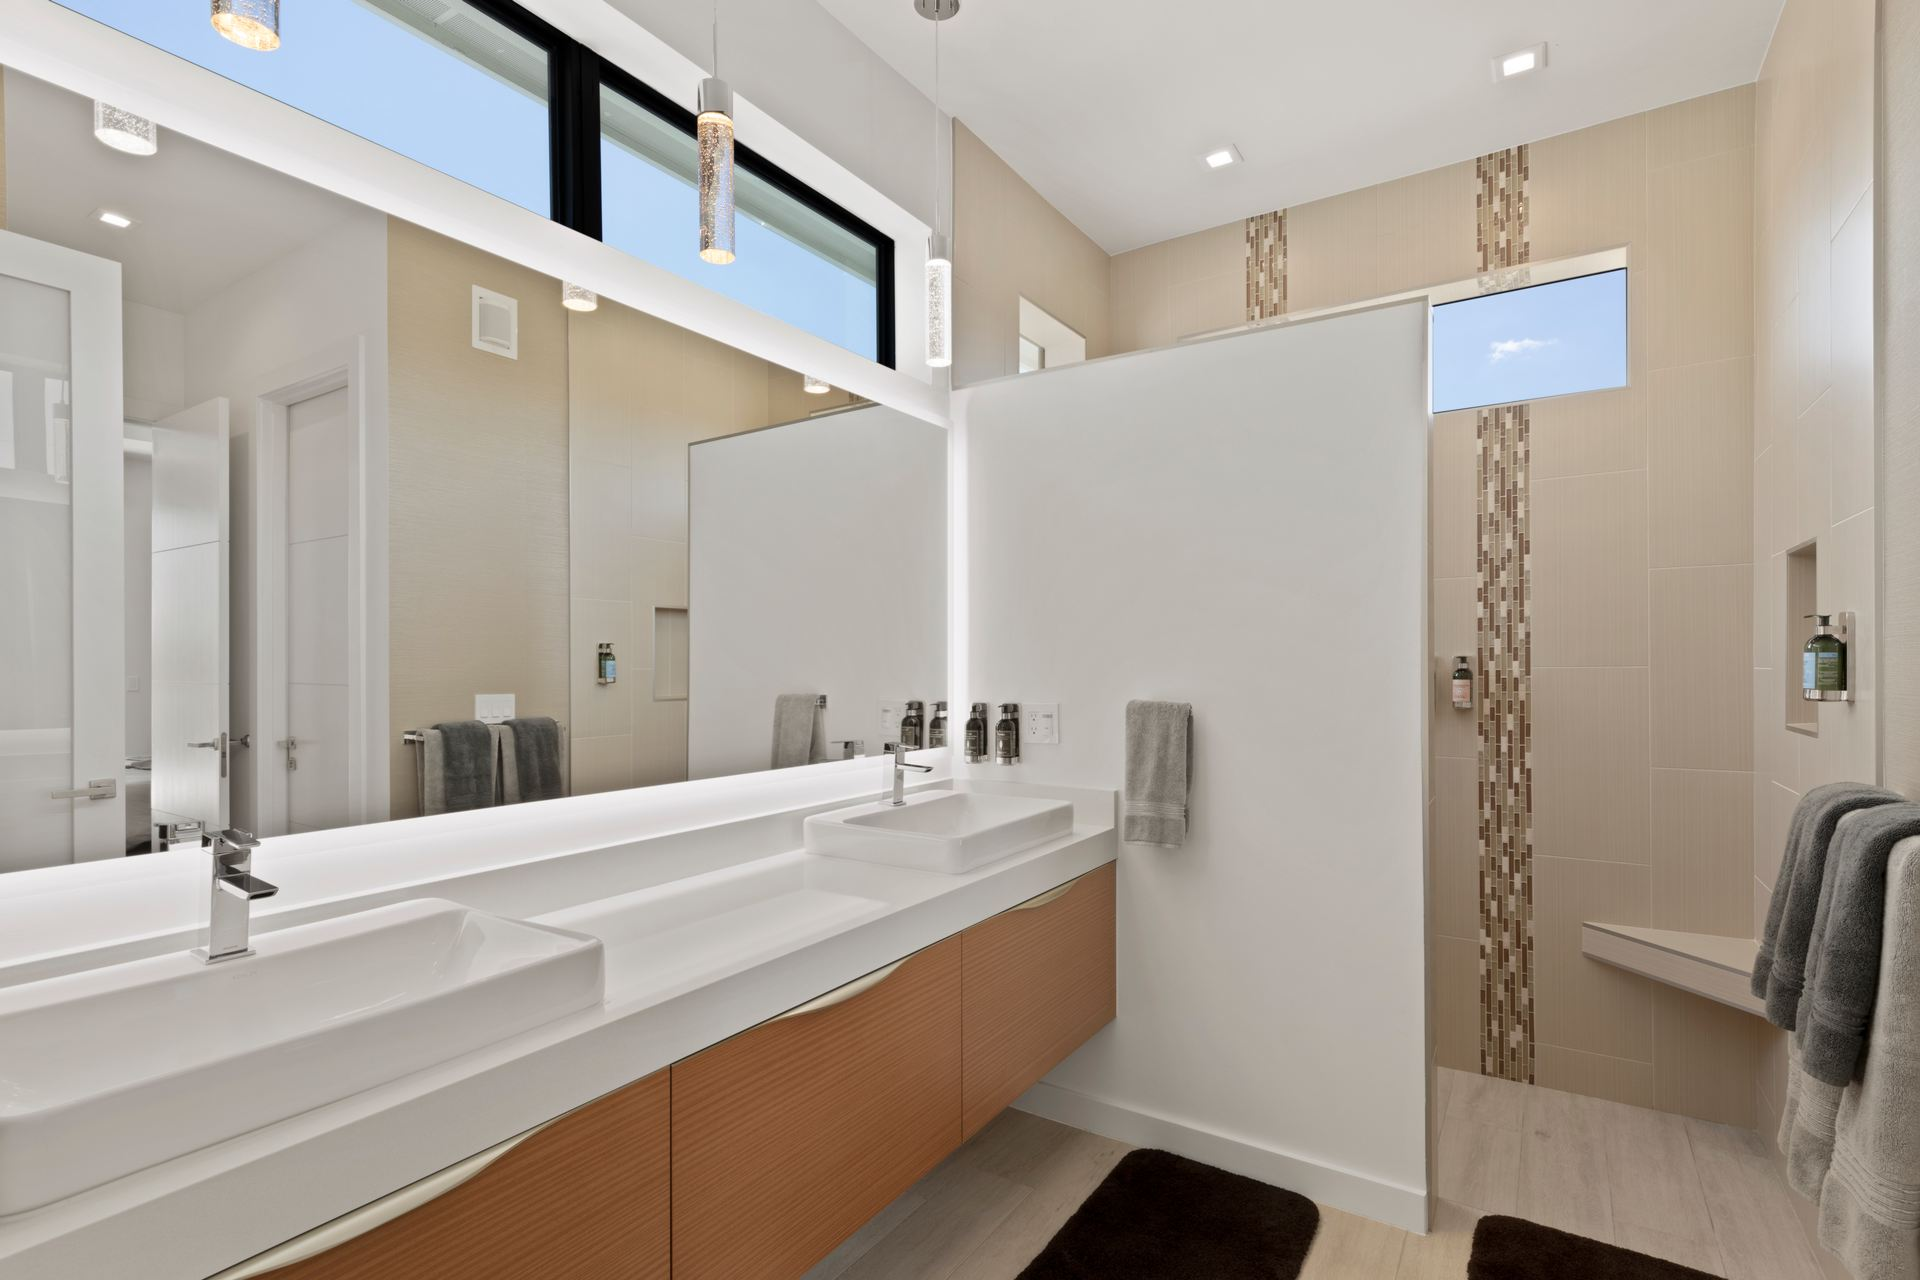 Bathrooms in the rental home